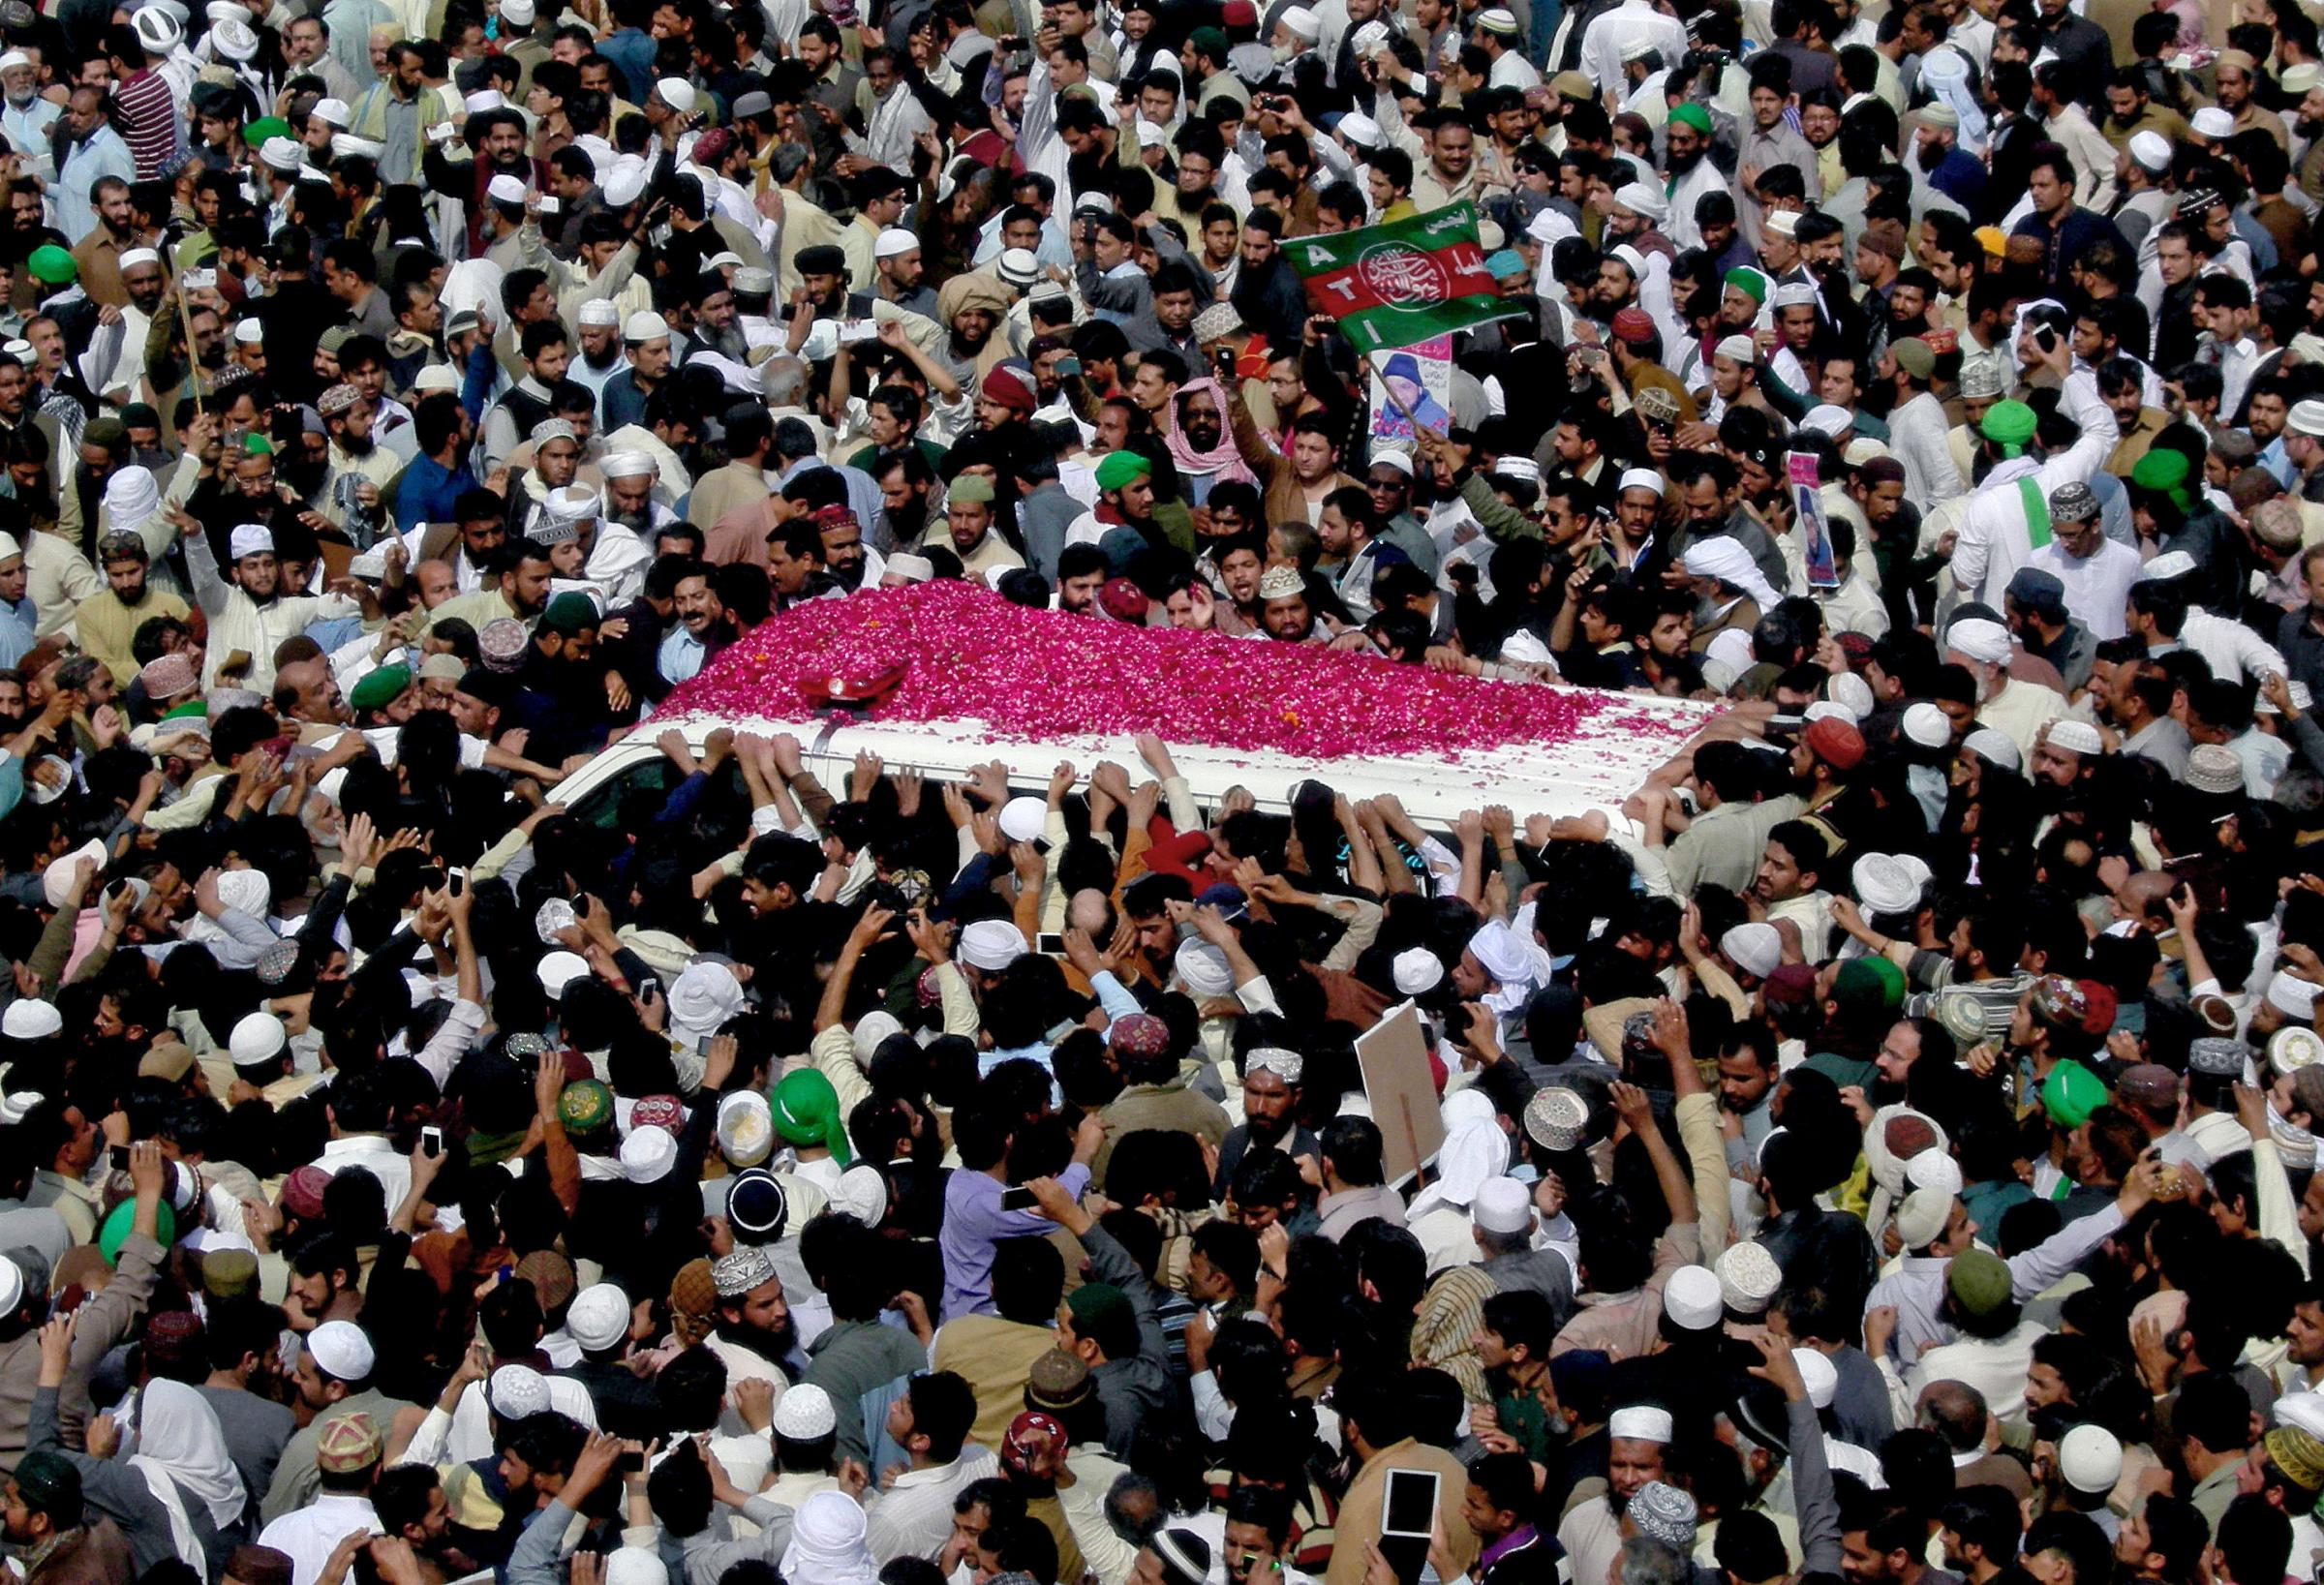 Huge crowds mourned Mumtaz Qadri in Pakistan.  He was hanged for killing Salmaan Taseer over his opposition to blasphemy laws